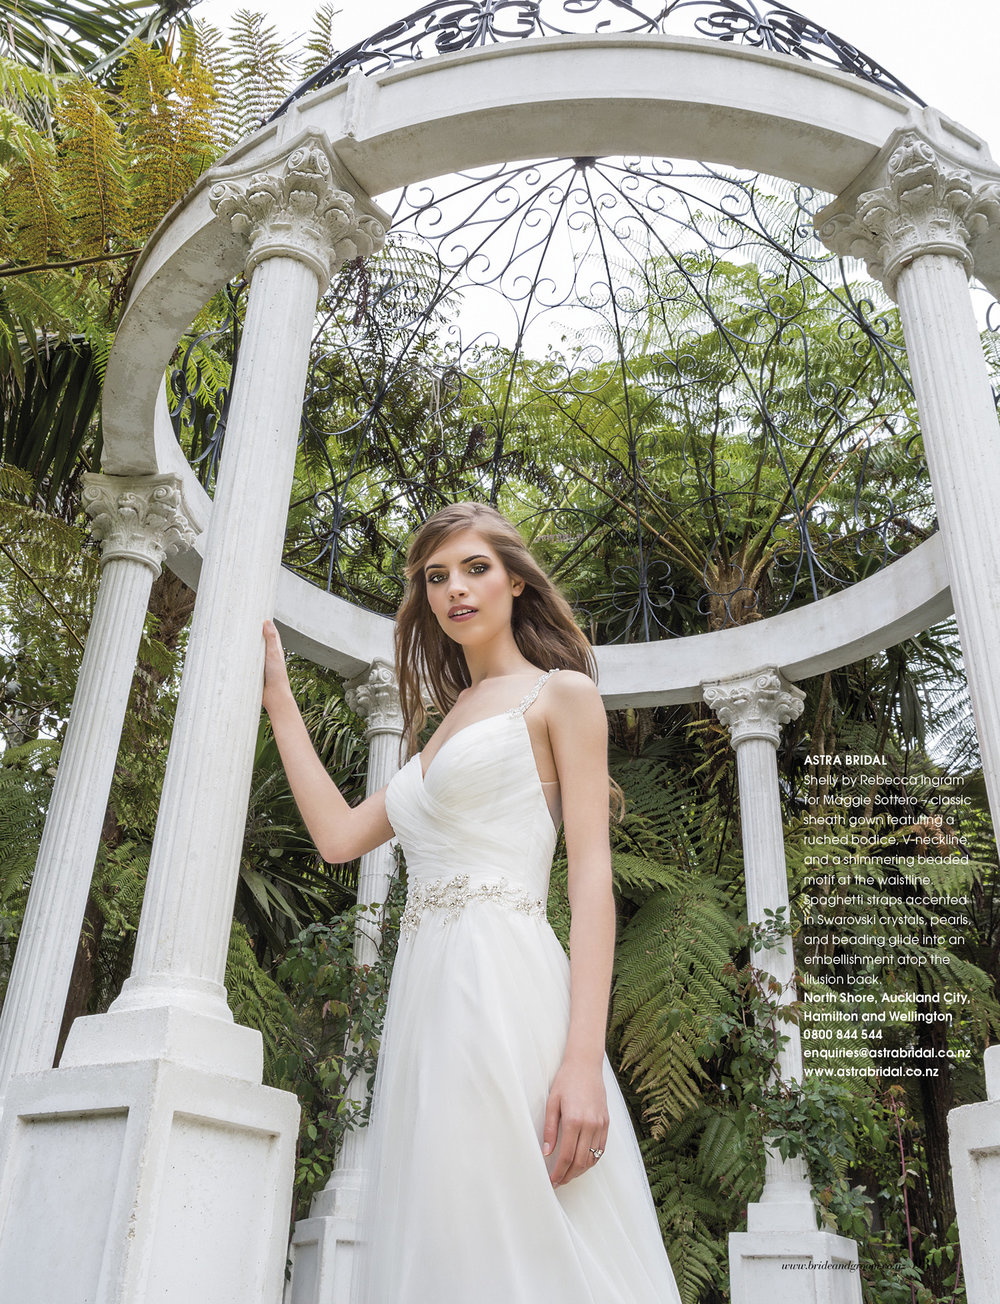 Shelley from Rebecca Ingram | Issue 91 Bride and Groom Magazine | Available from Astra Bridal |